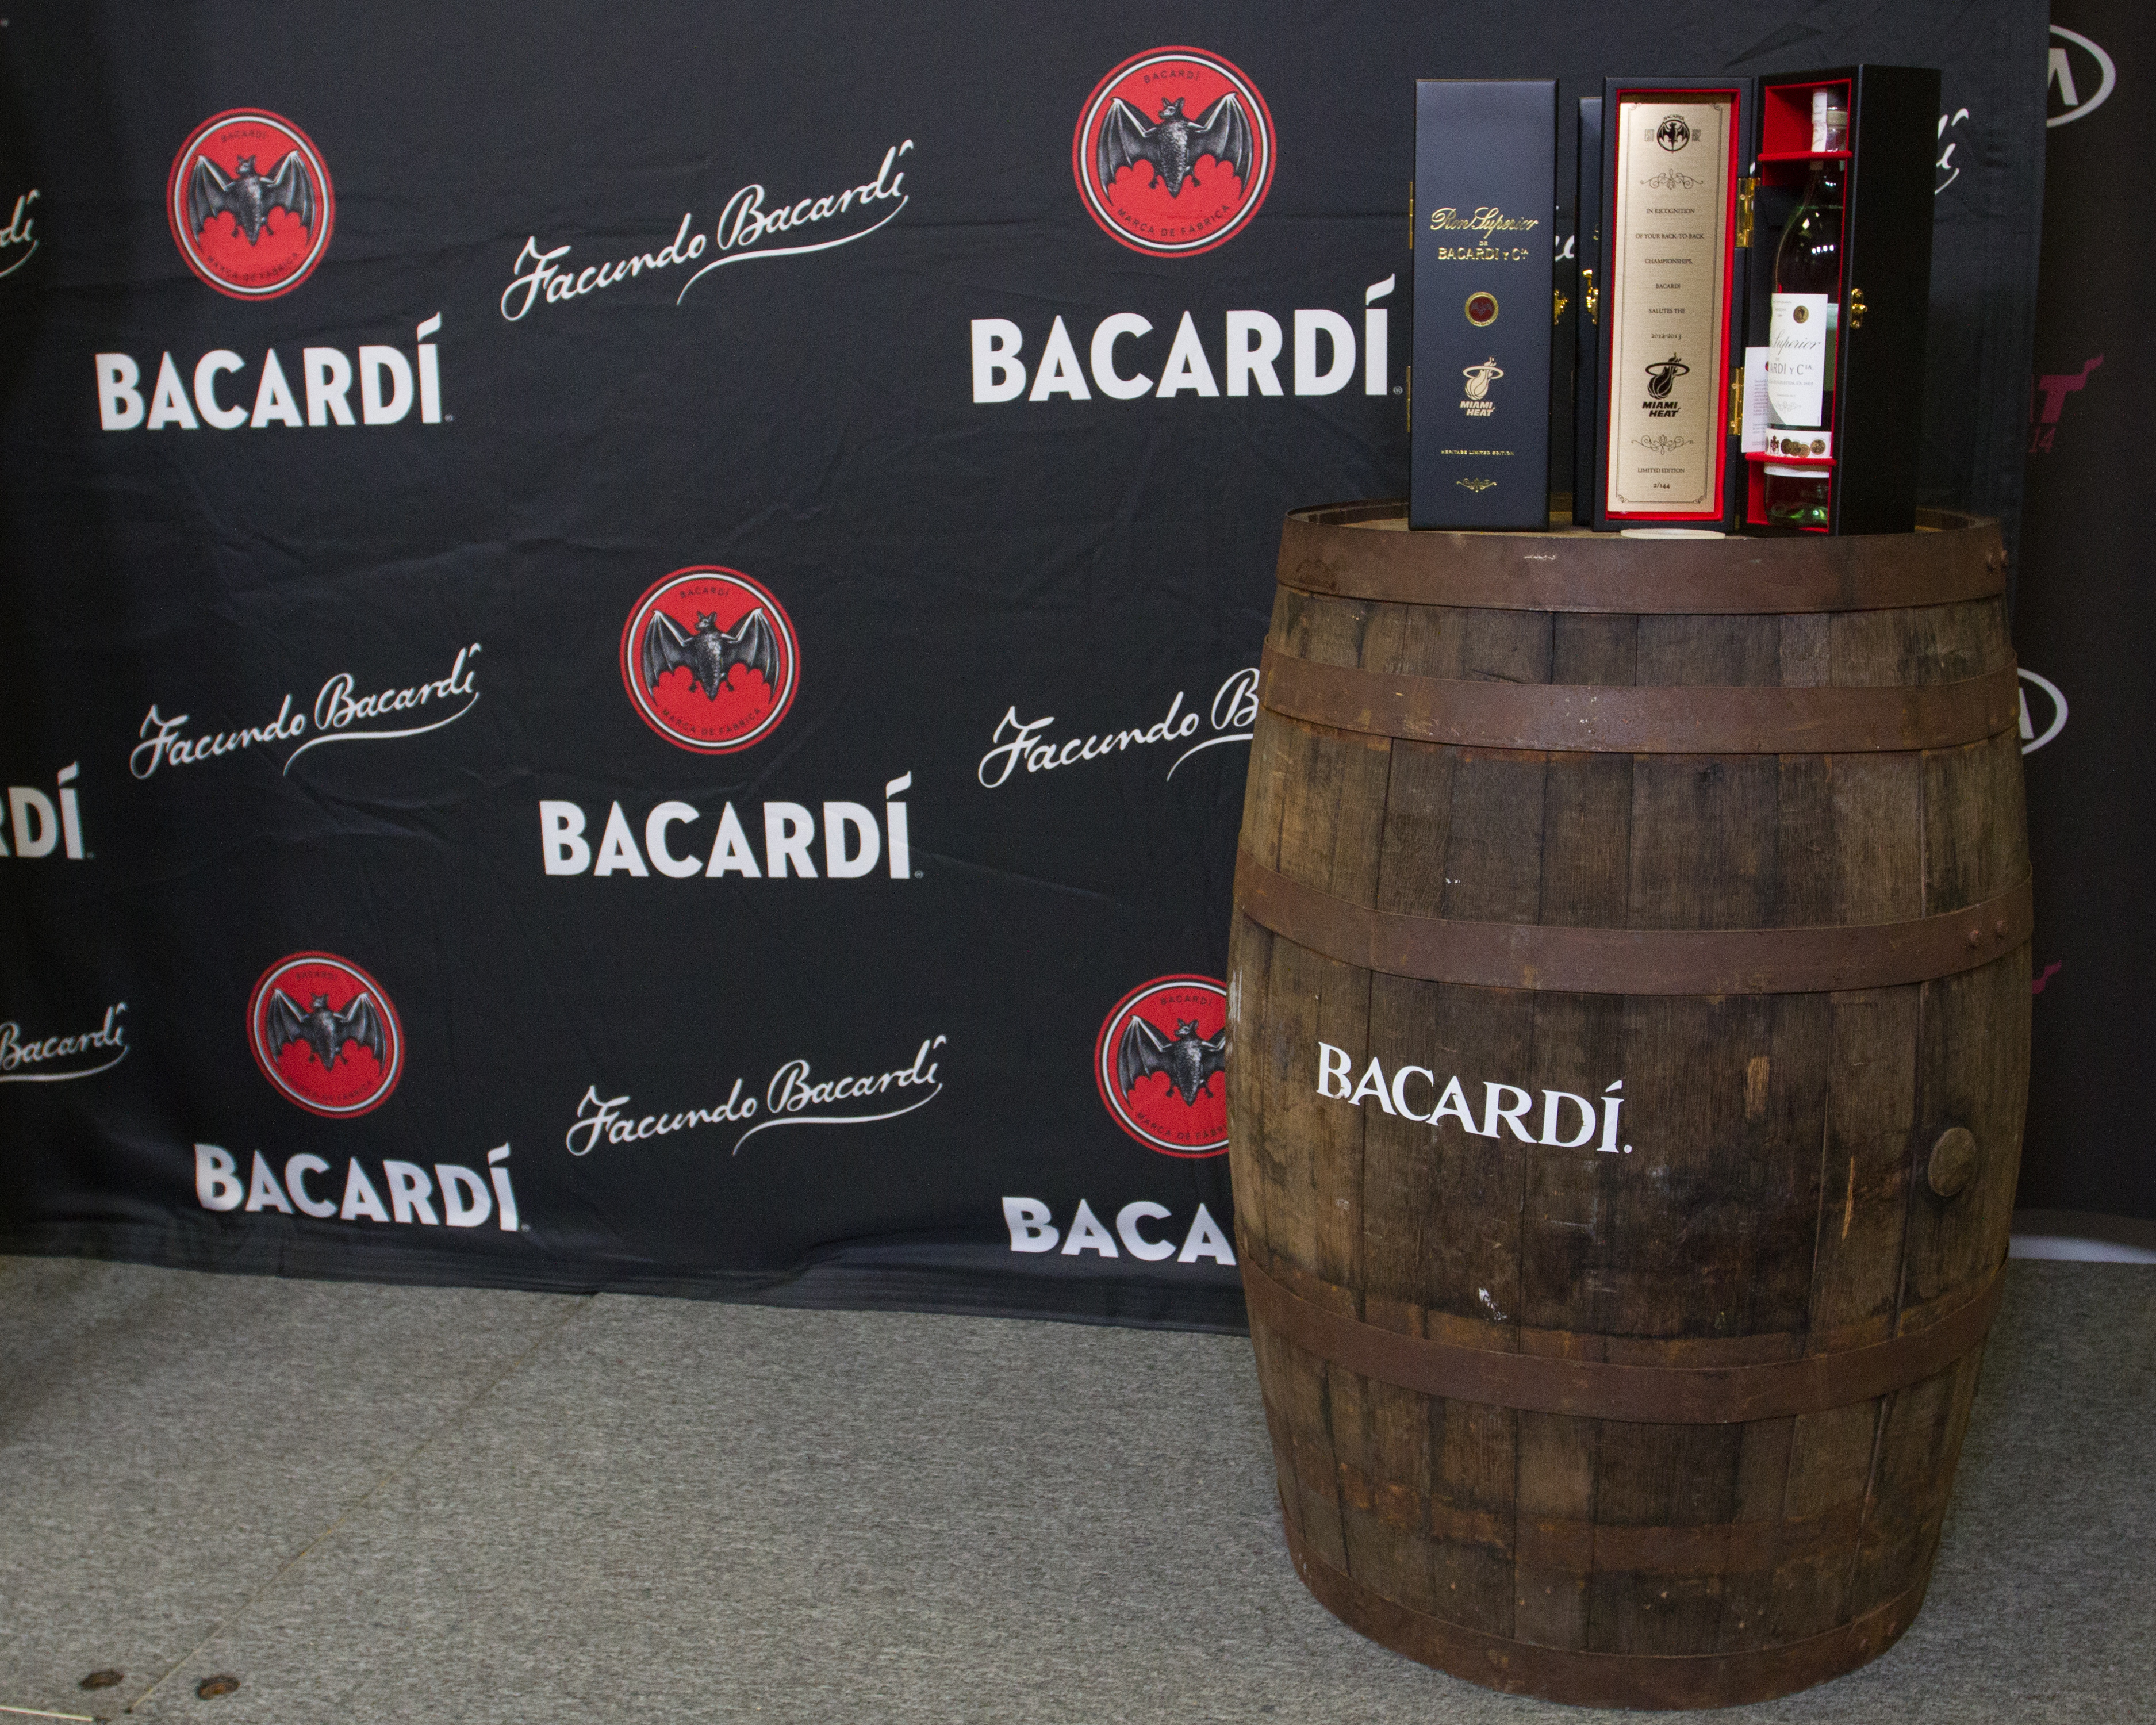 A limited-edition bottle of BACARDI Superior rum on Dec. 18, 2013 in Miami, Florida.